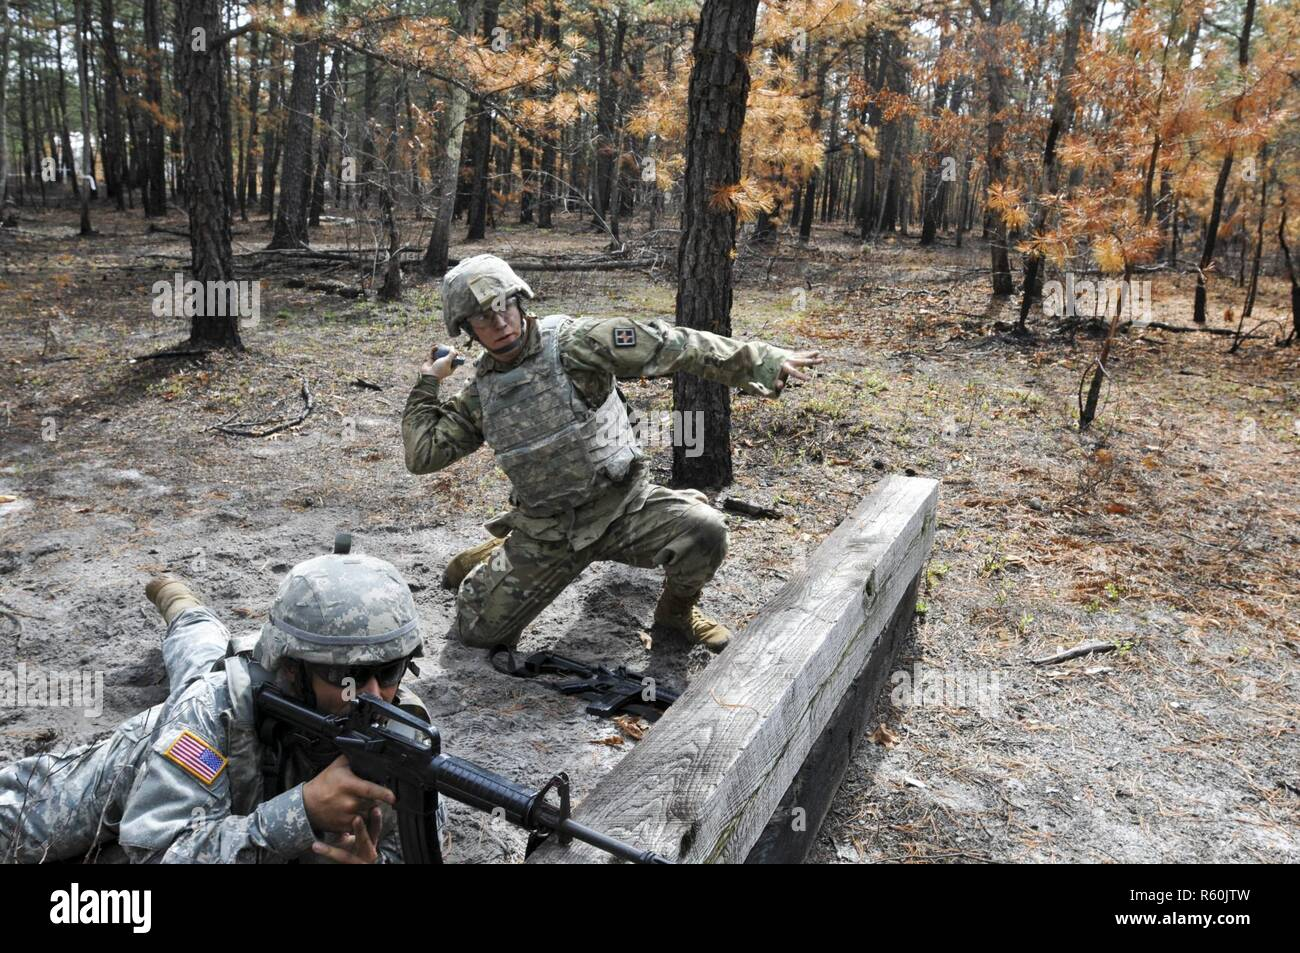 411th Engineer Brigade High Resolution Stock Photography And Images Alamy